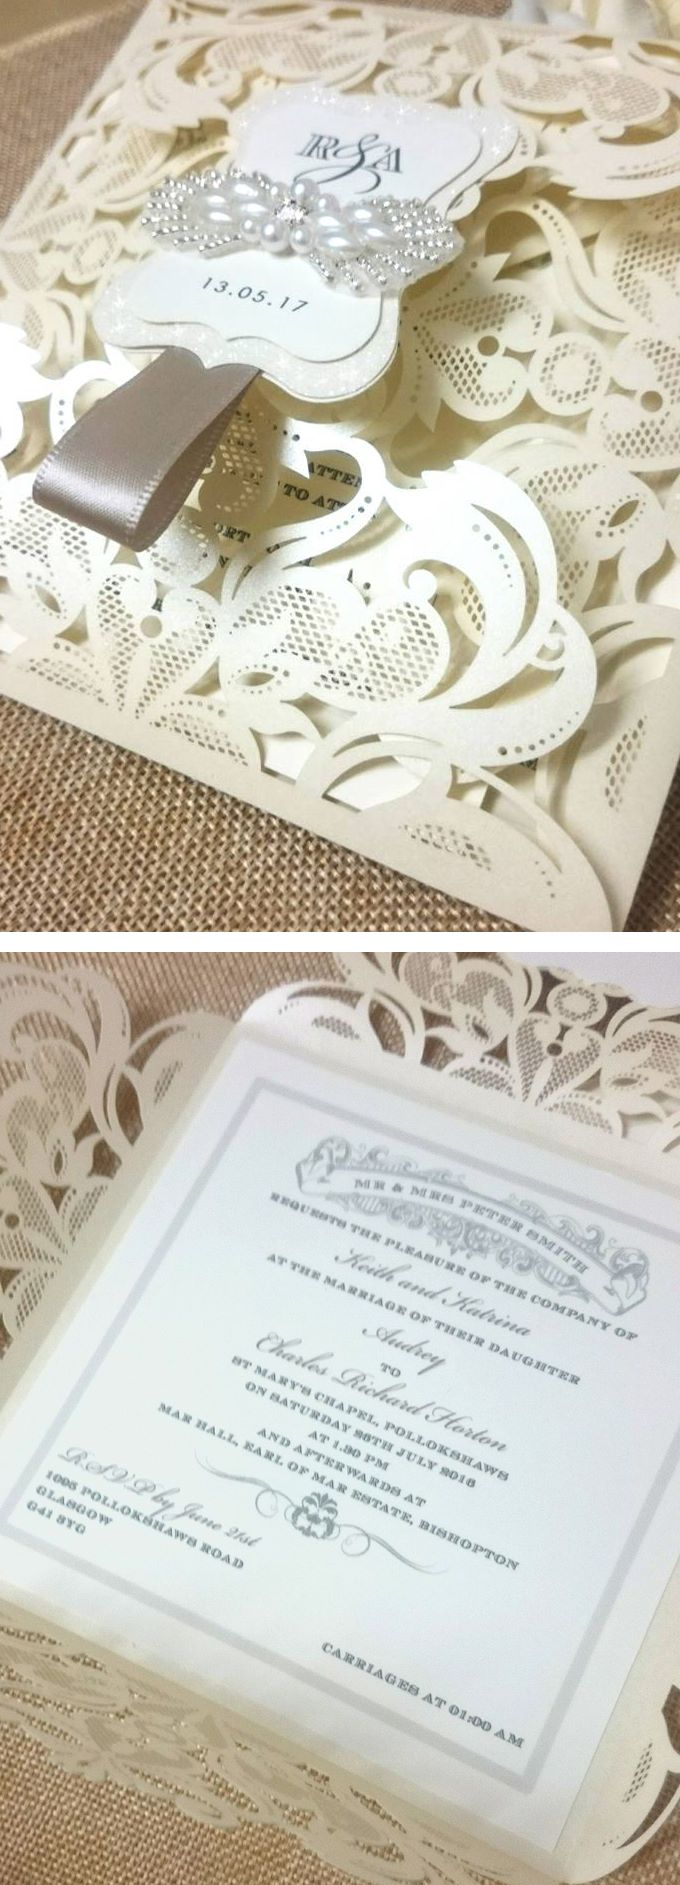 wedding invitations gifts%0A Laser Cut Pocket Wedding Invitation  beaded and jewelled applique  unique  wedding  luxury stationery